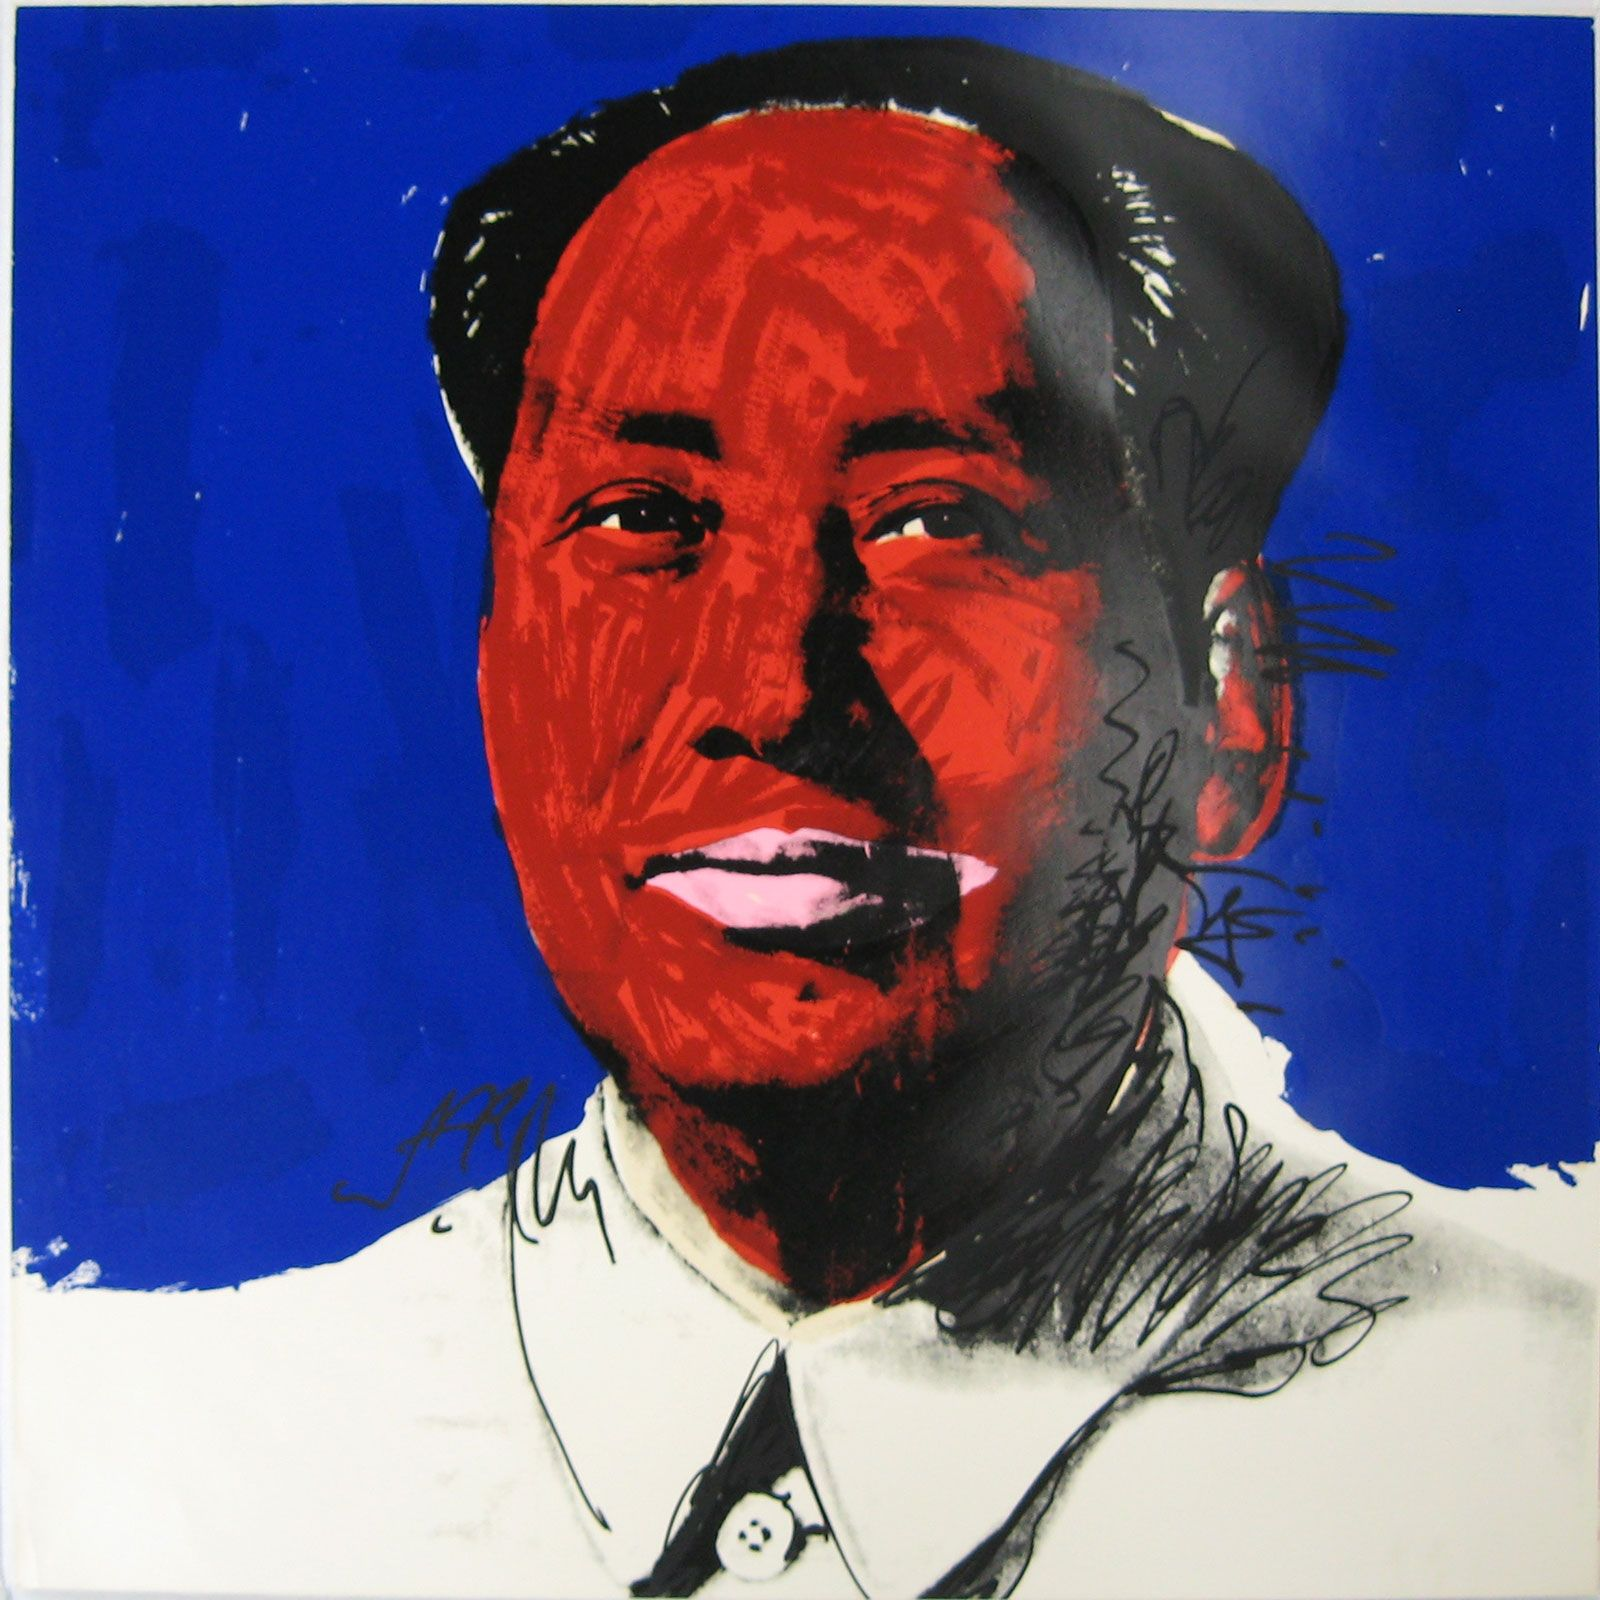 Mao by Andy Warhol at Hg Contemporary gallery